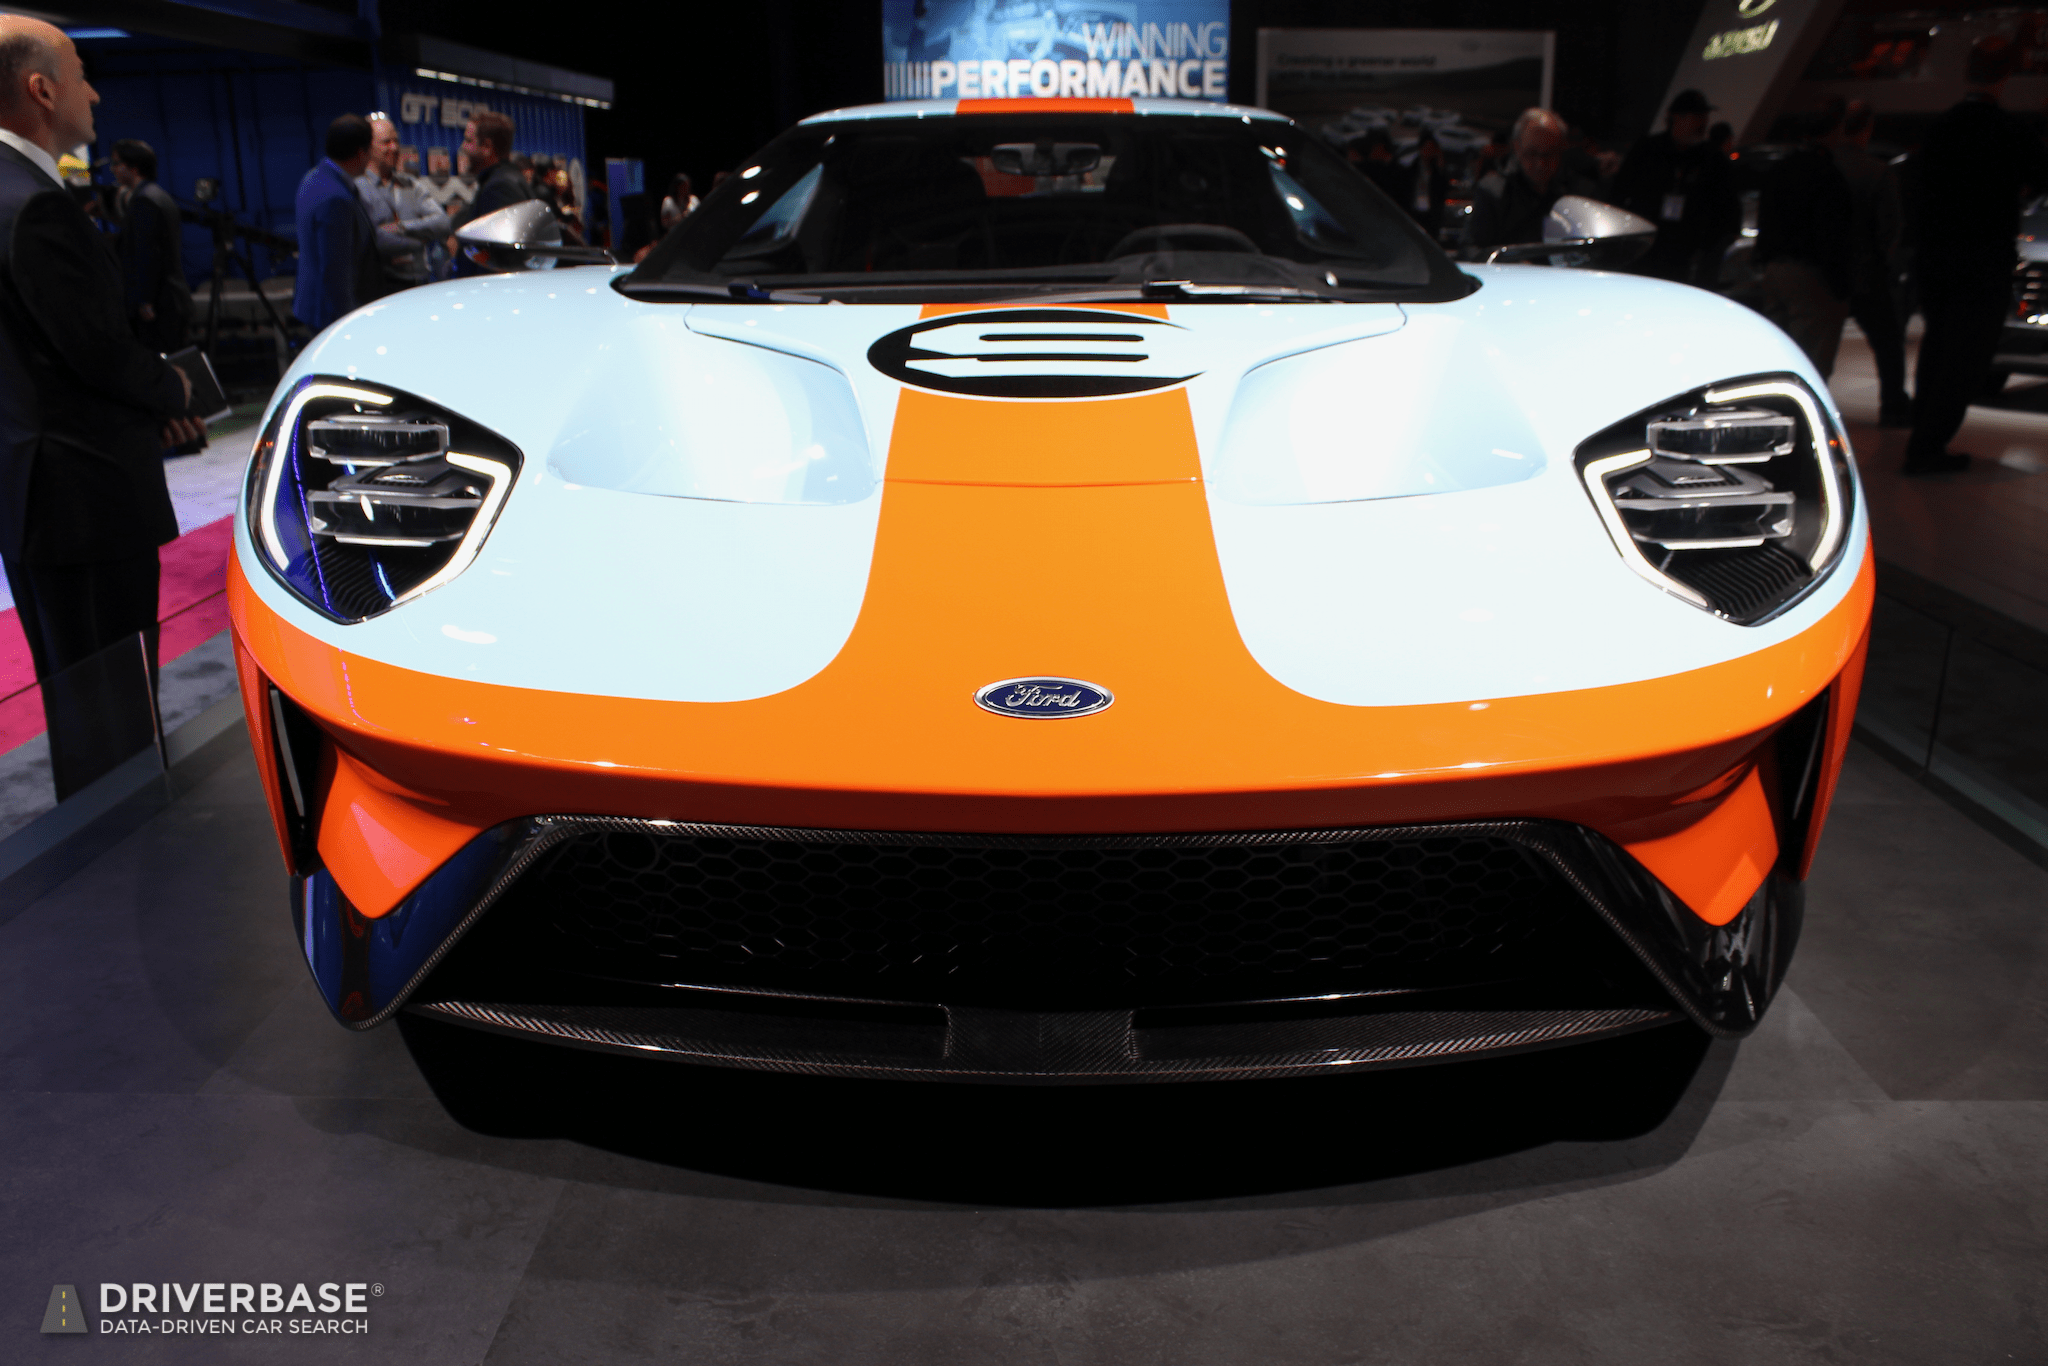 2020 Ford GT at the 2019 New York Auto Show - Driverbase